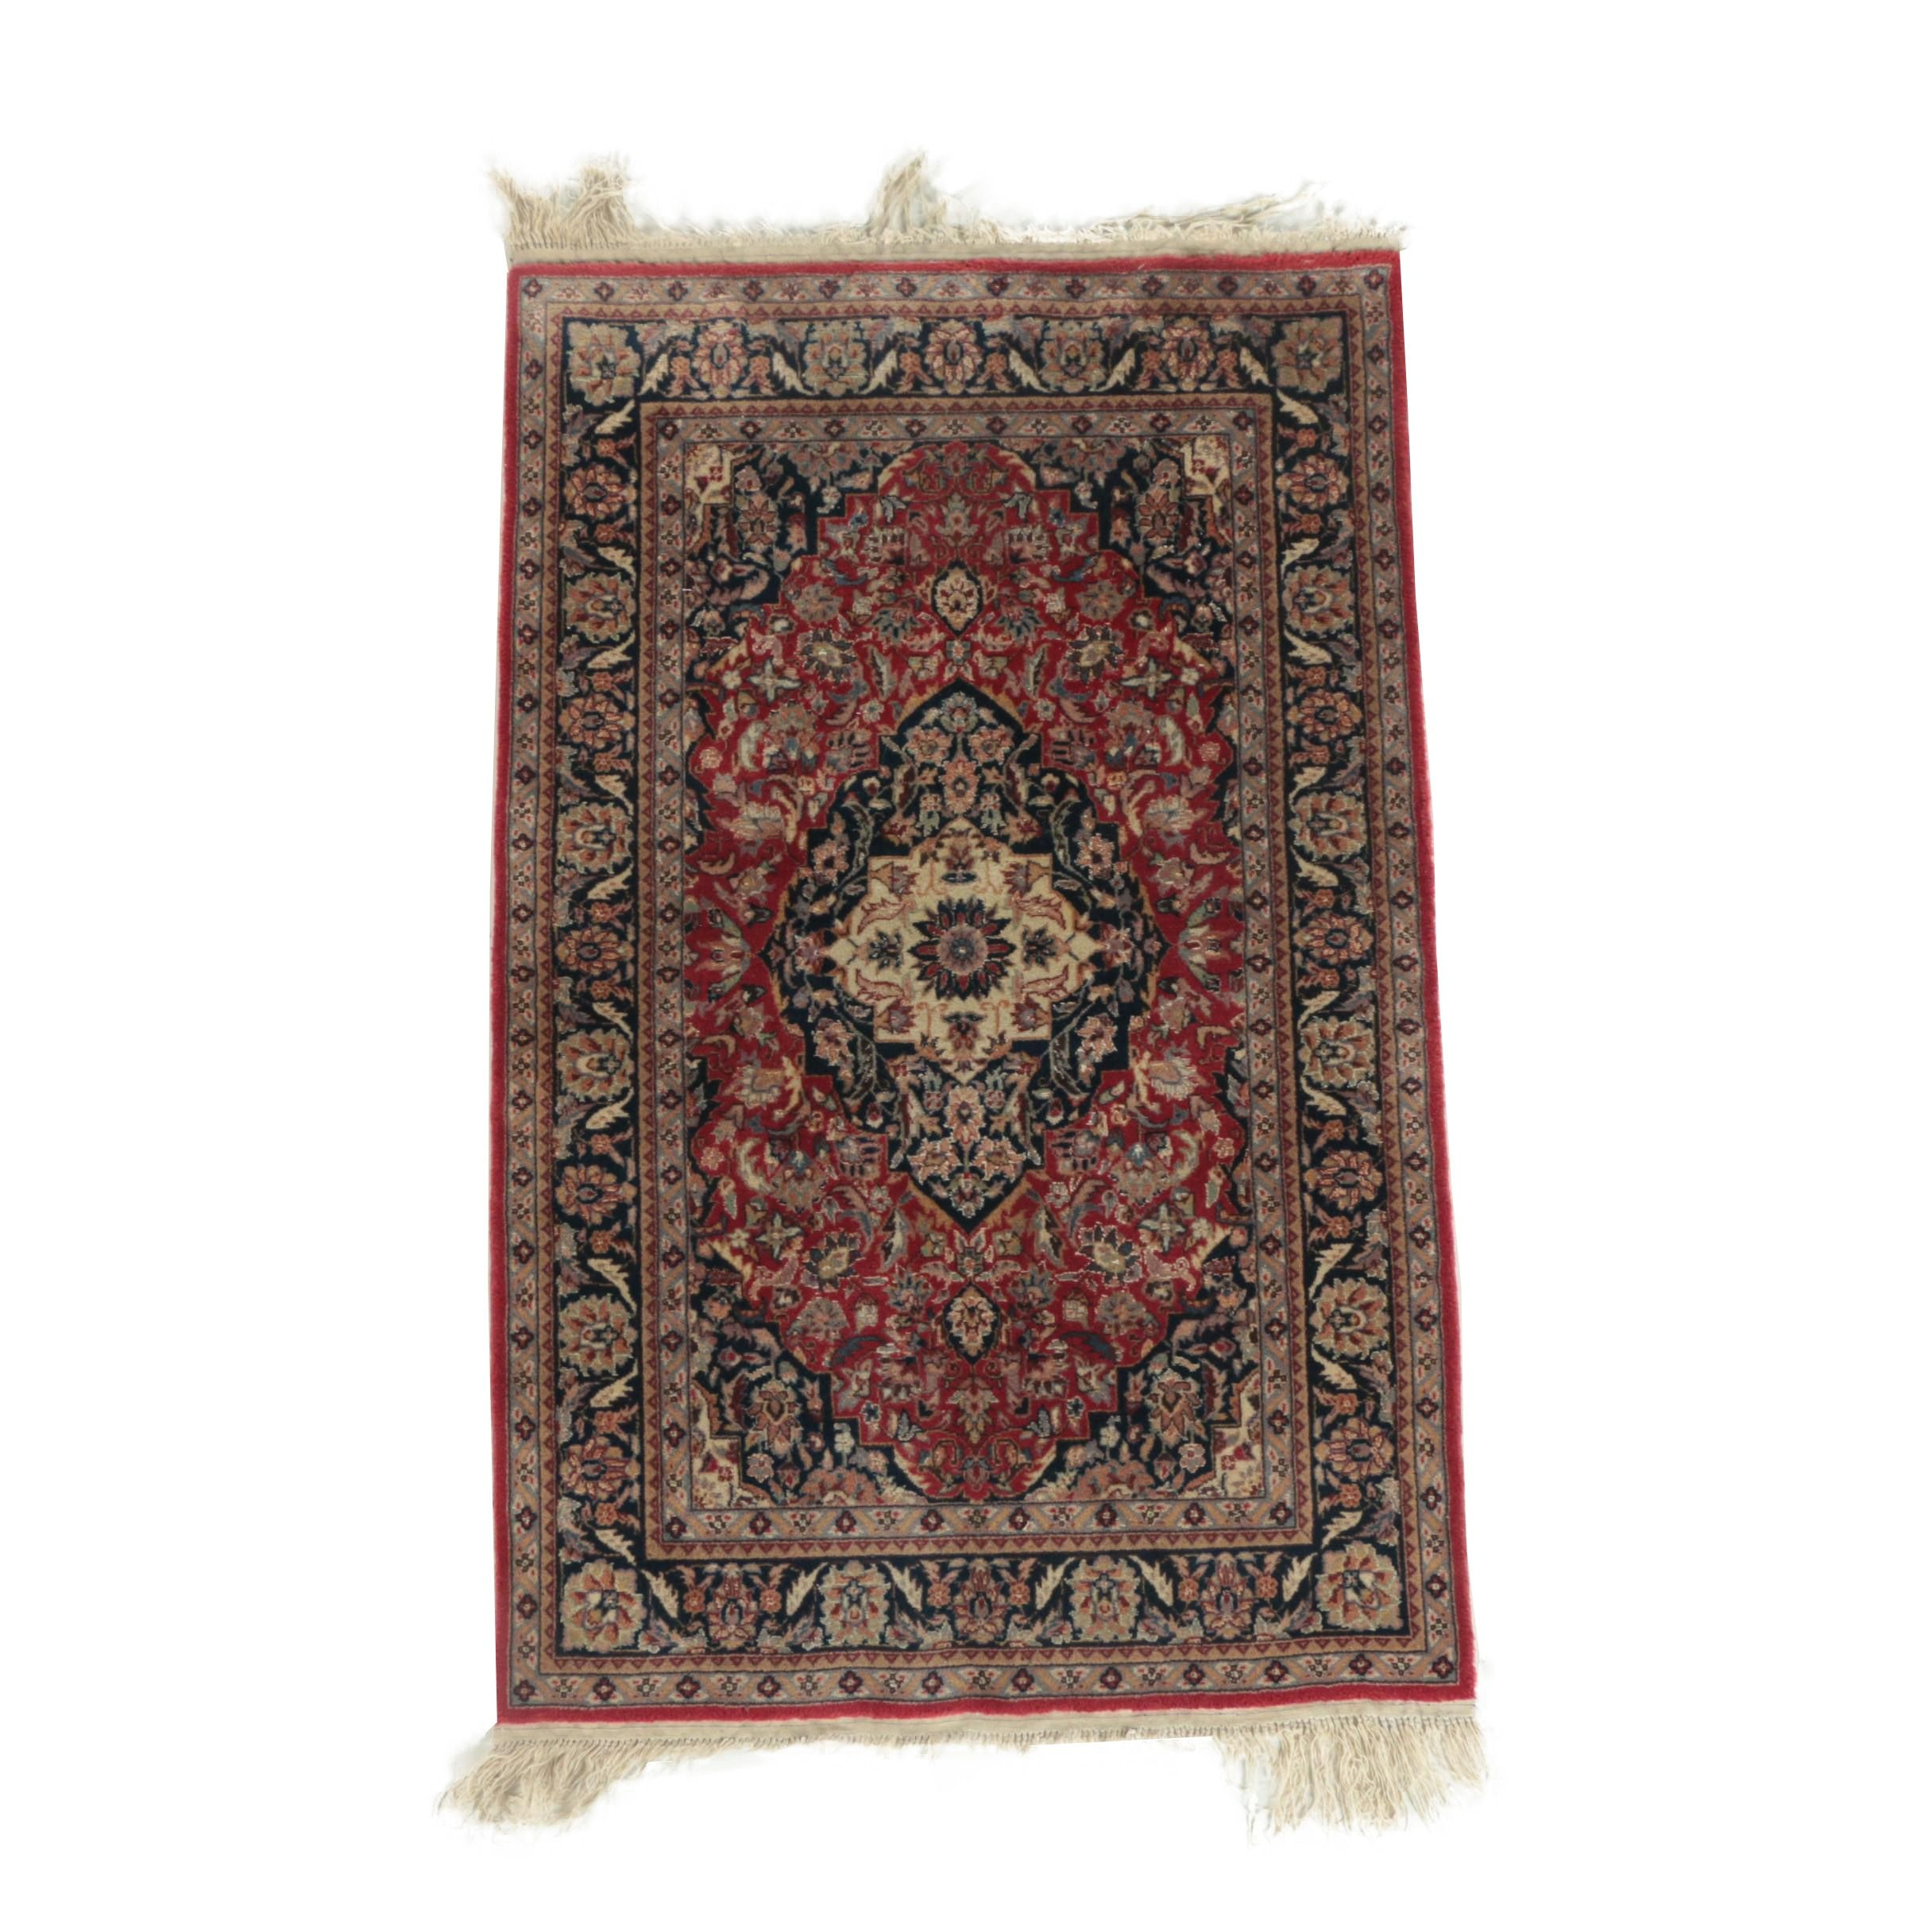 Hand-Knotted Indo-Persian Wool with Silk Accent Rug